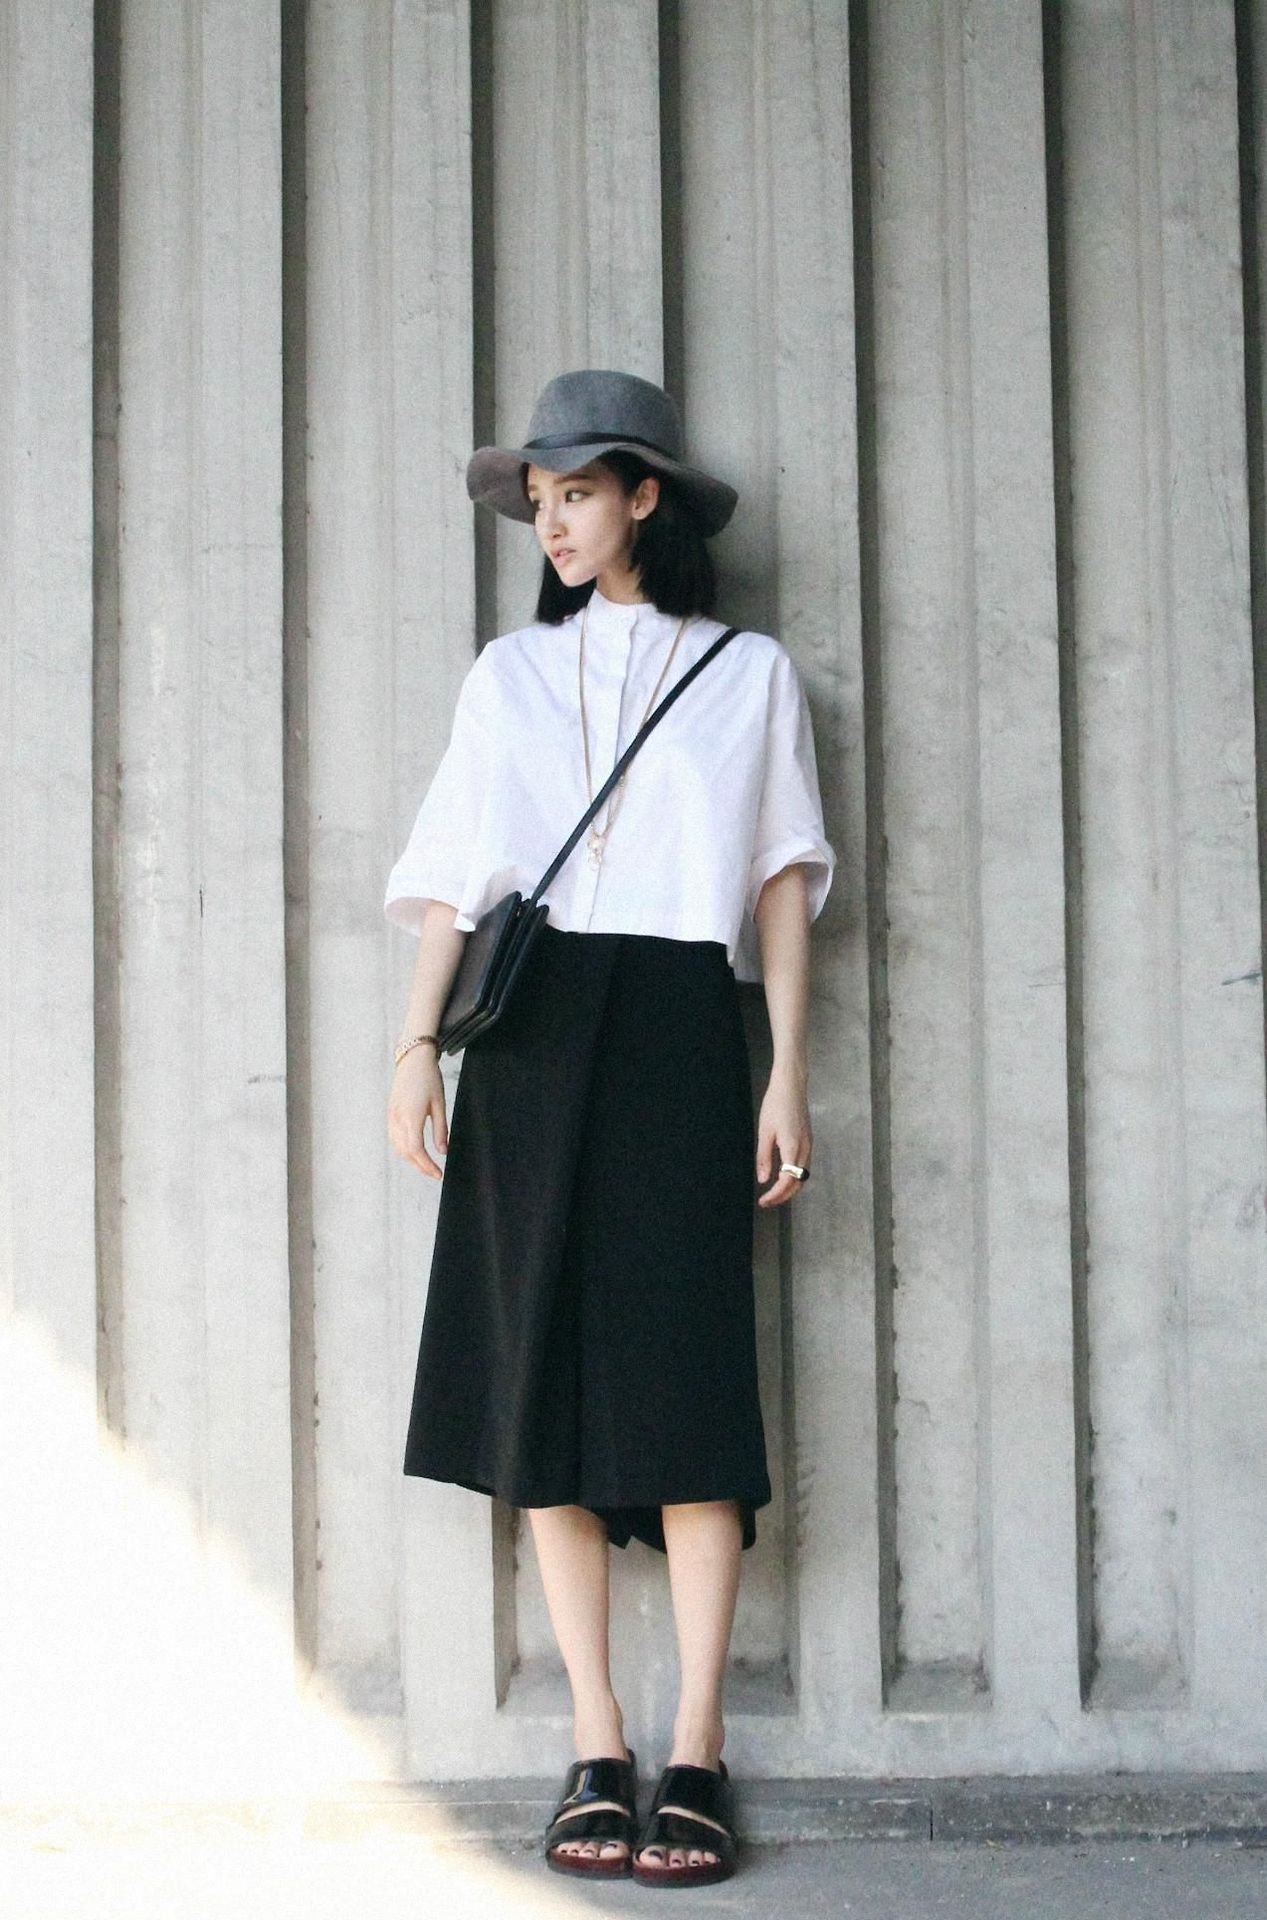 Loose blouse and long skirt fashion pinterest street